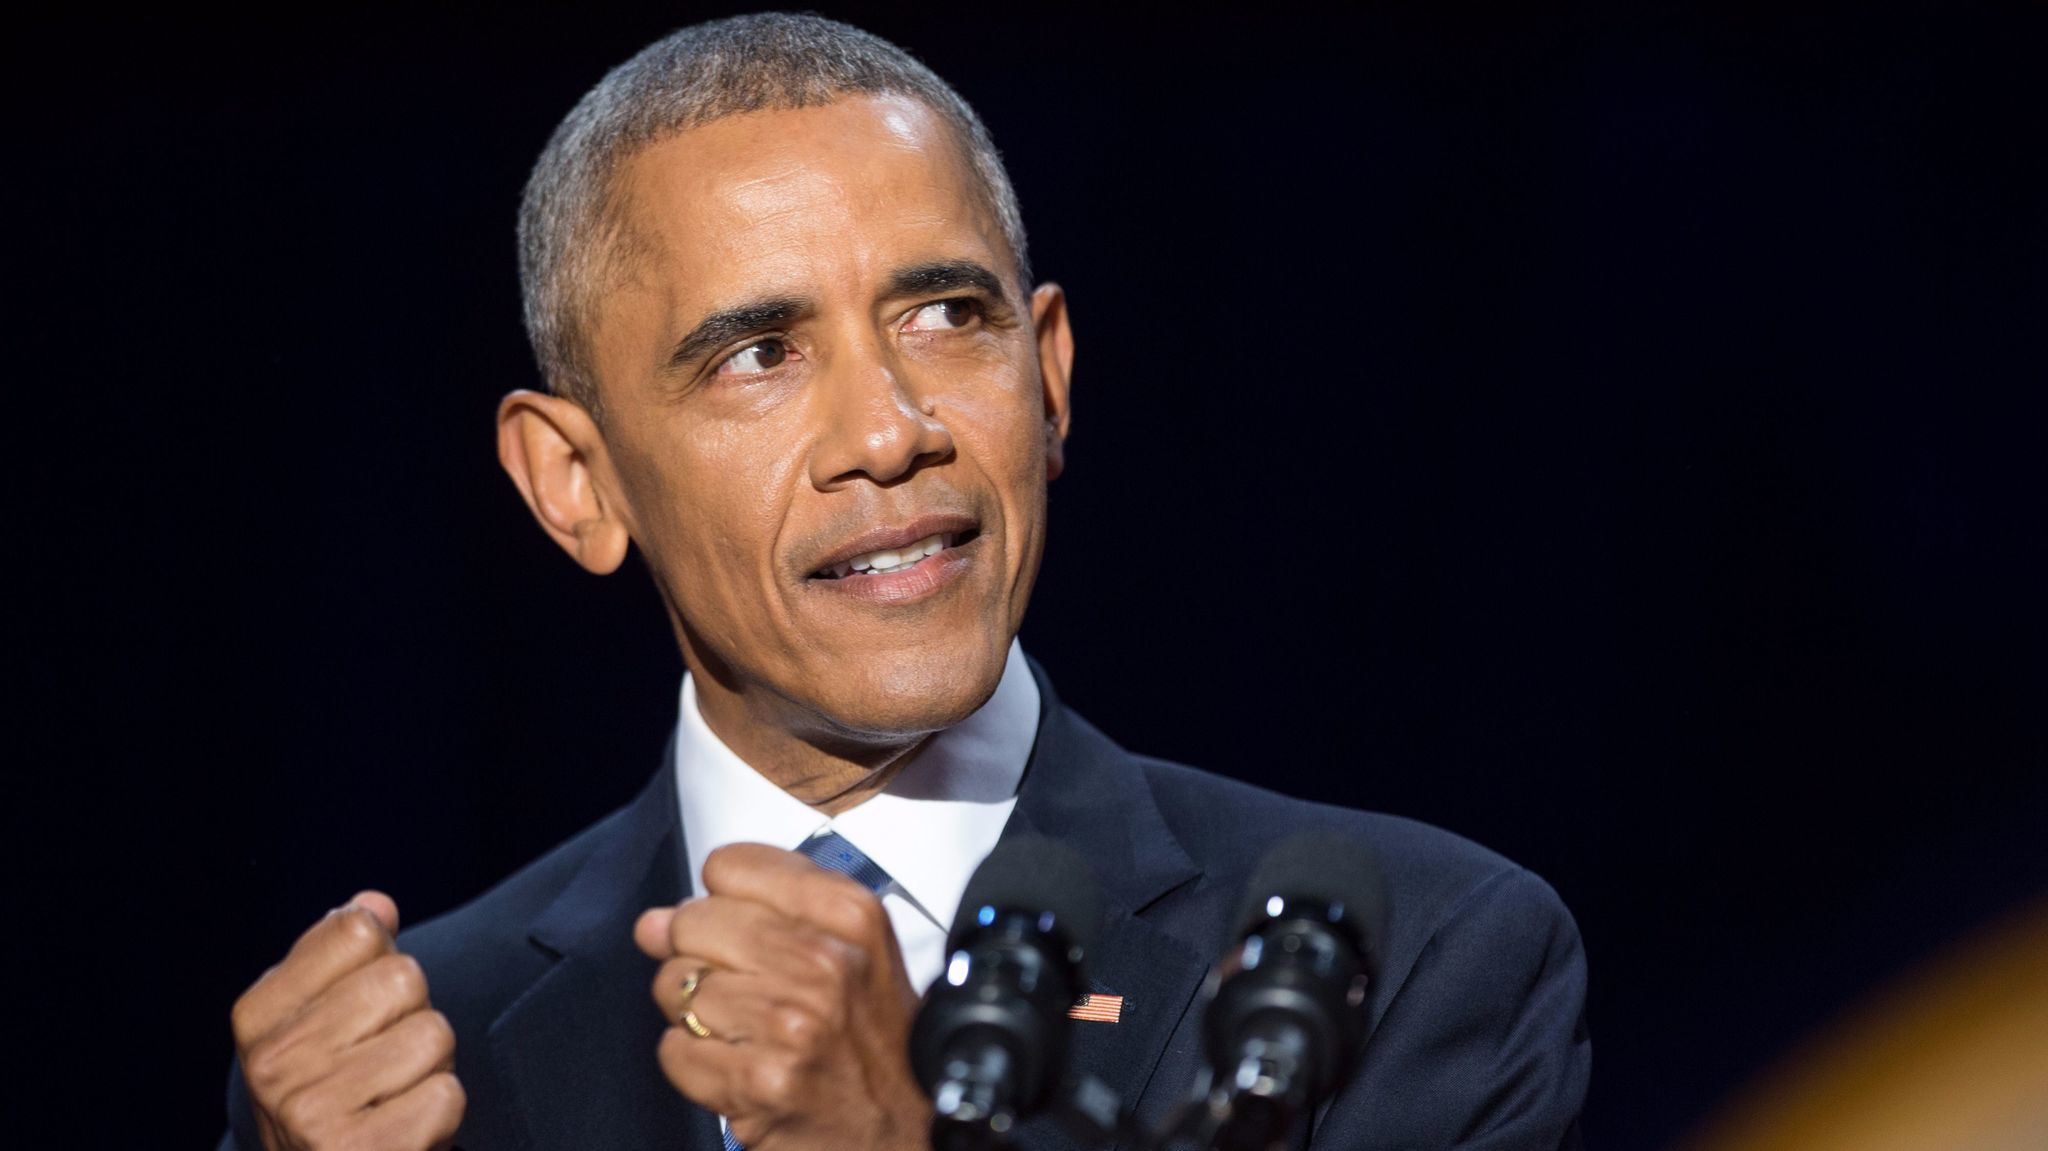 President Obama in his farewell address urged listeners unhappy with their representatives to